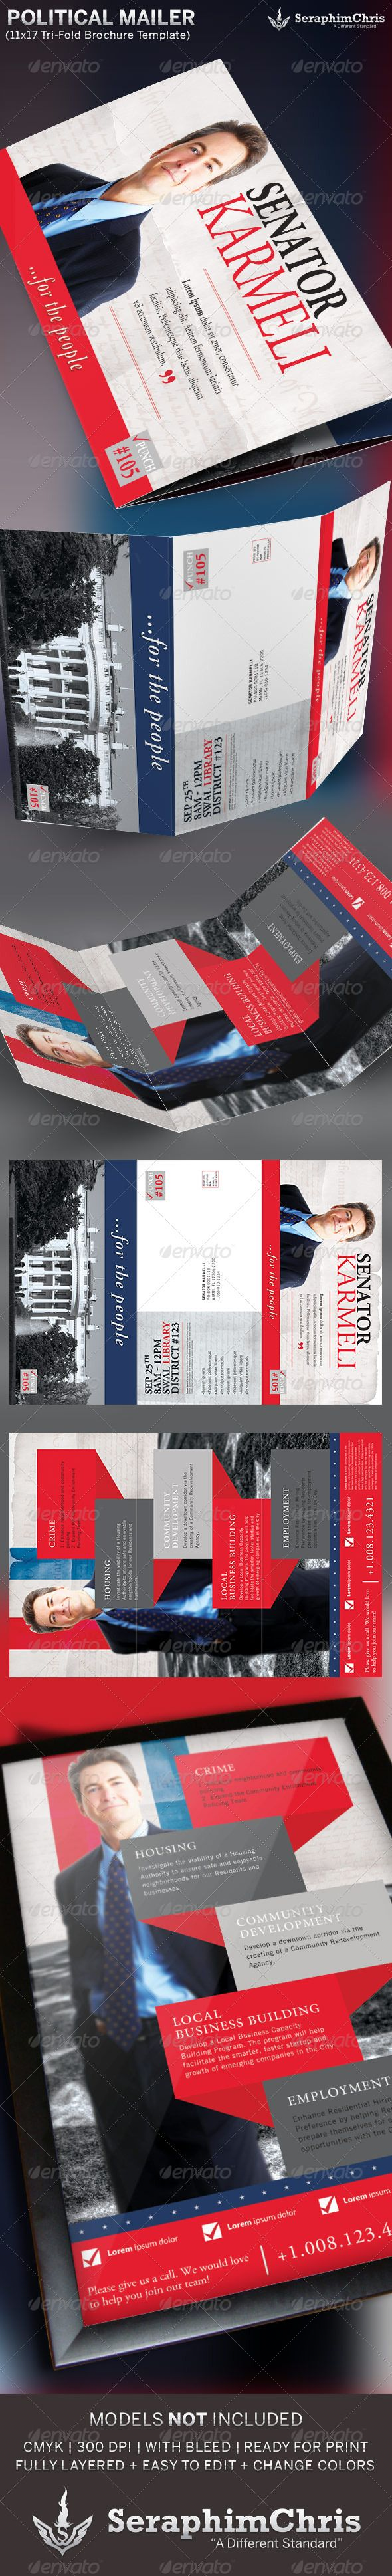 campaign brochure template - 17 best ideas about political campaign on pinterest